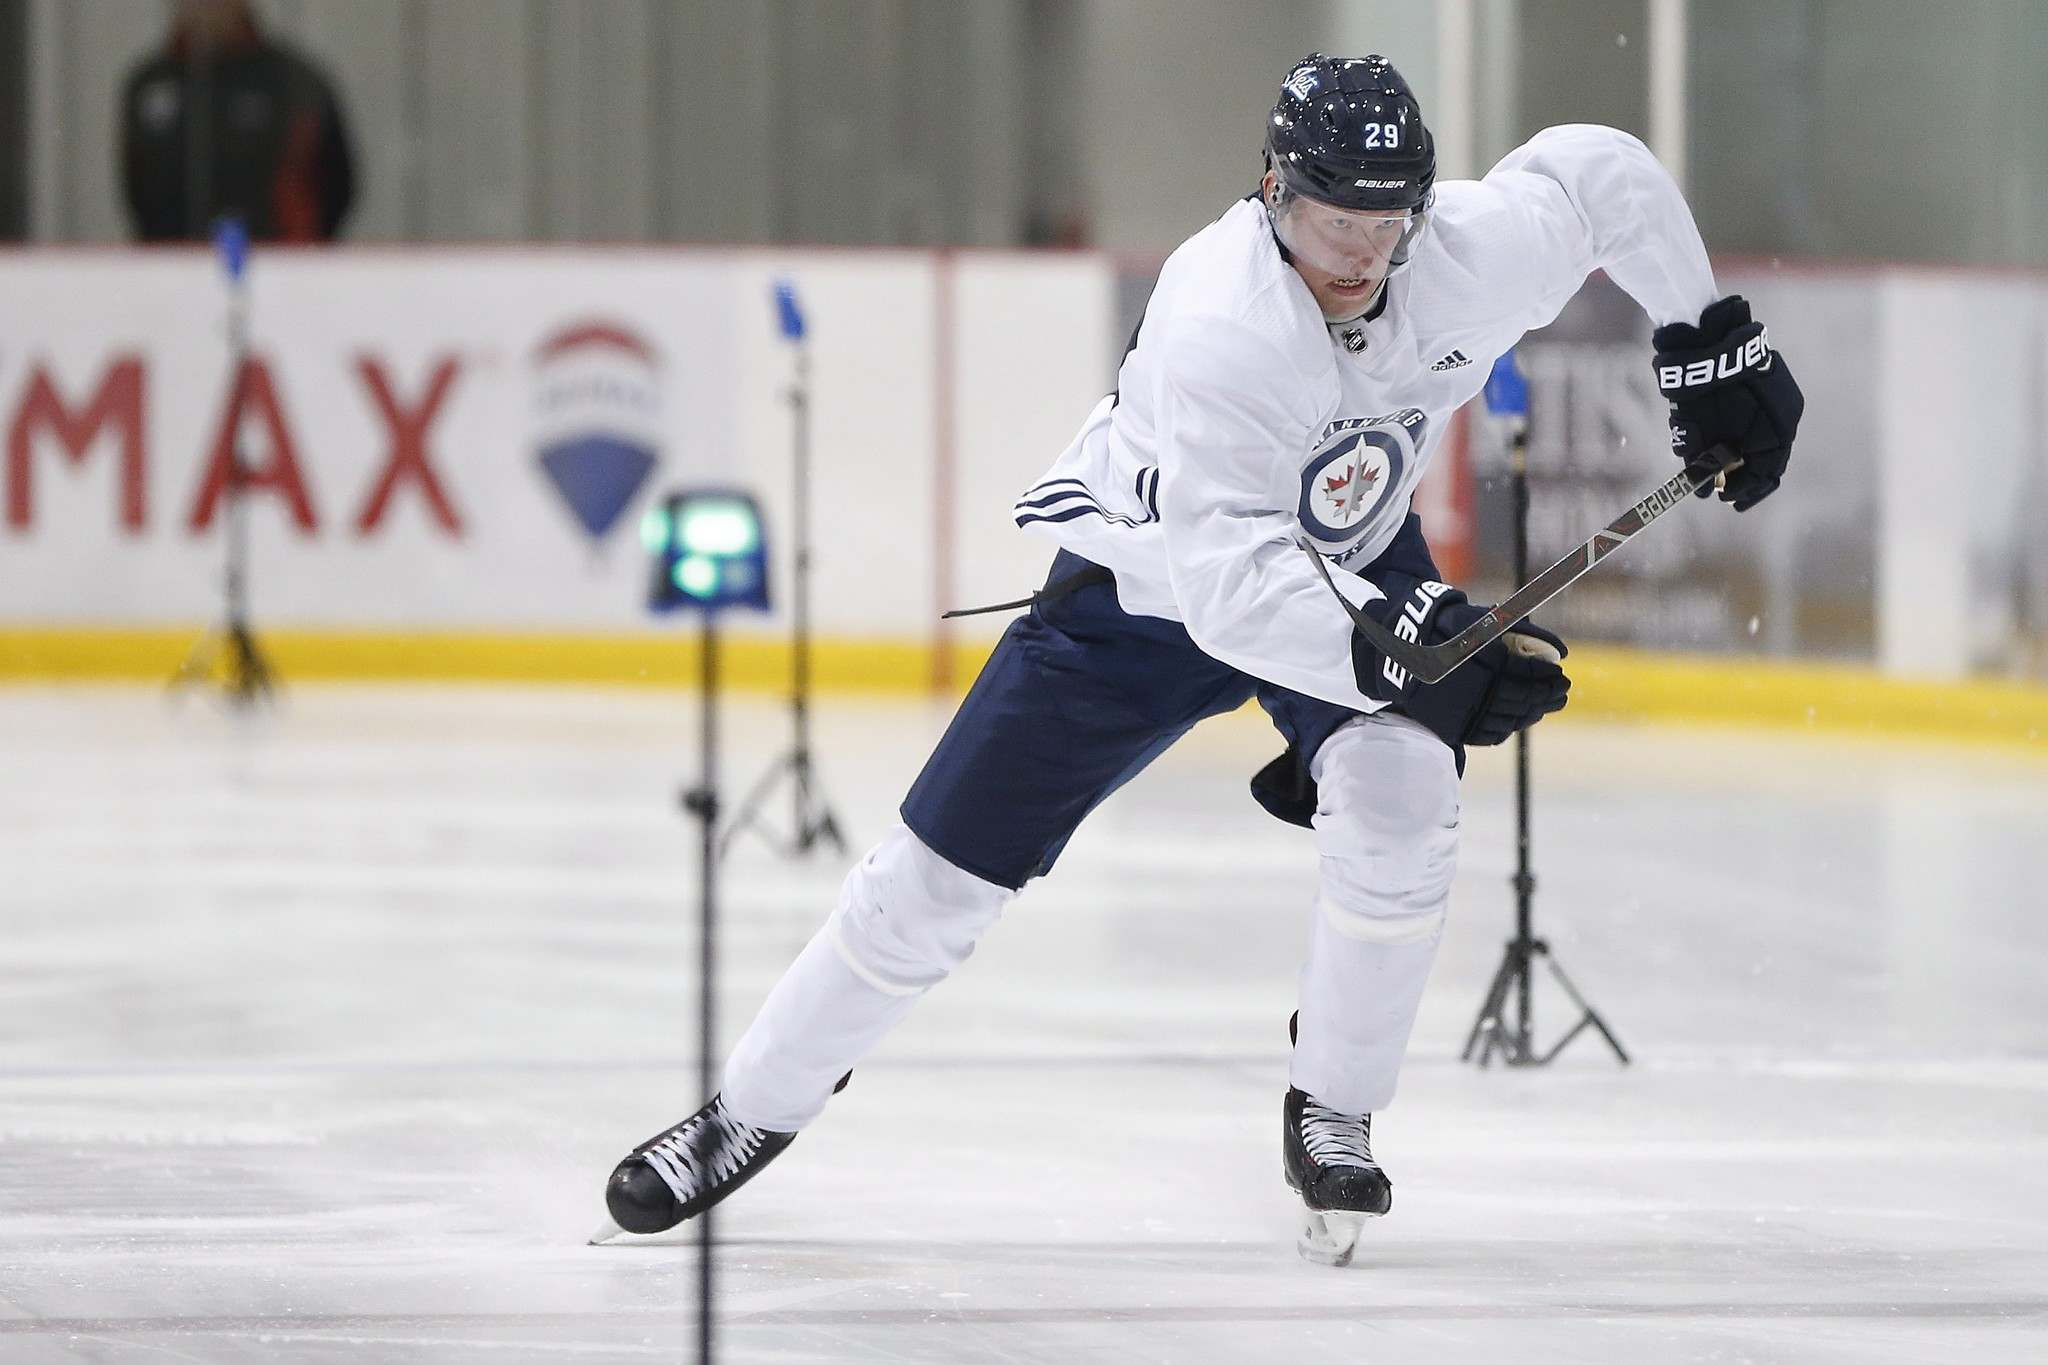 John Woods / The Canadian Press</p><p>Patrik Laine dropped 14 pounds during the summer to weigh in at 215 heading into the season.</p></p>